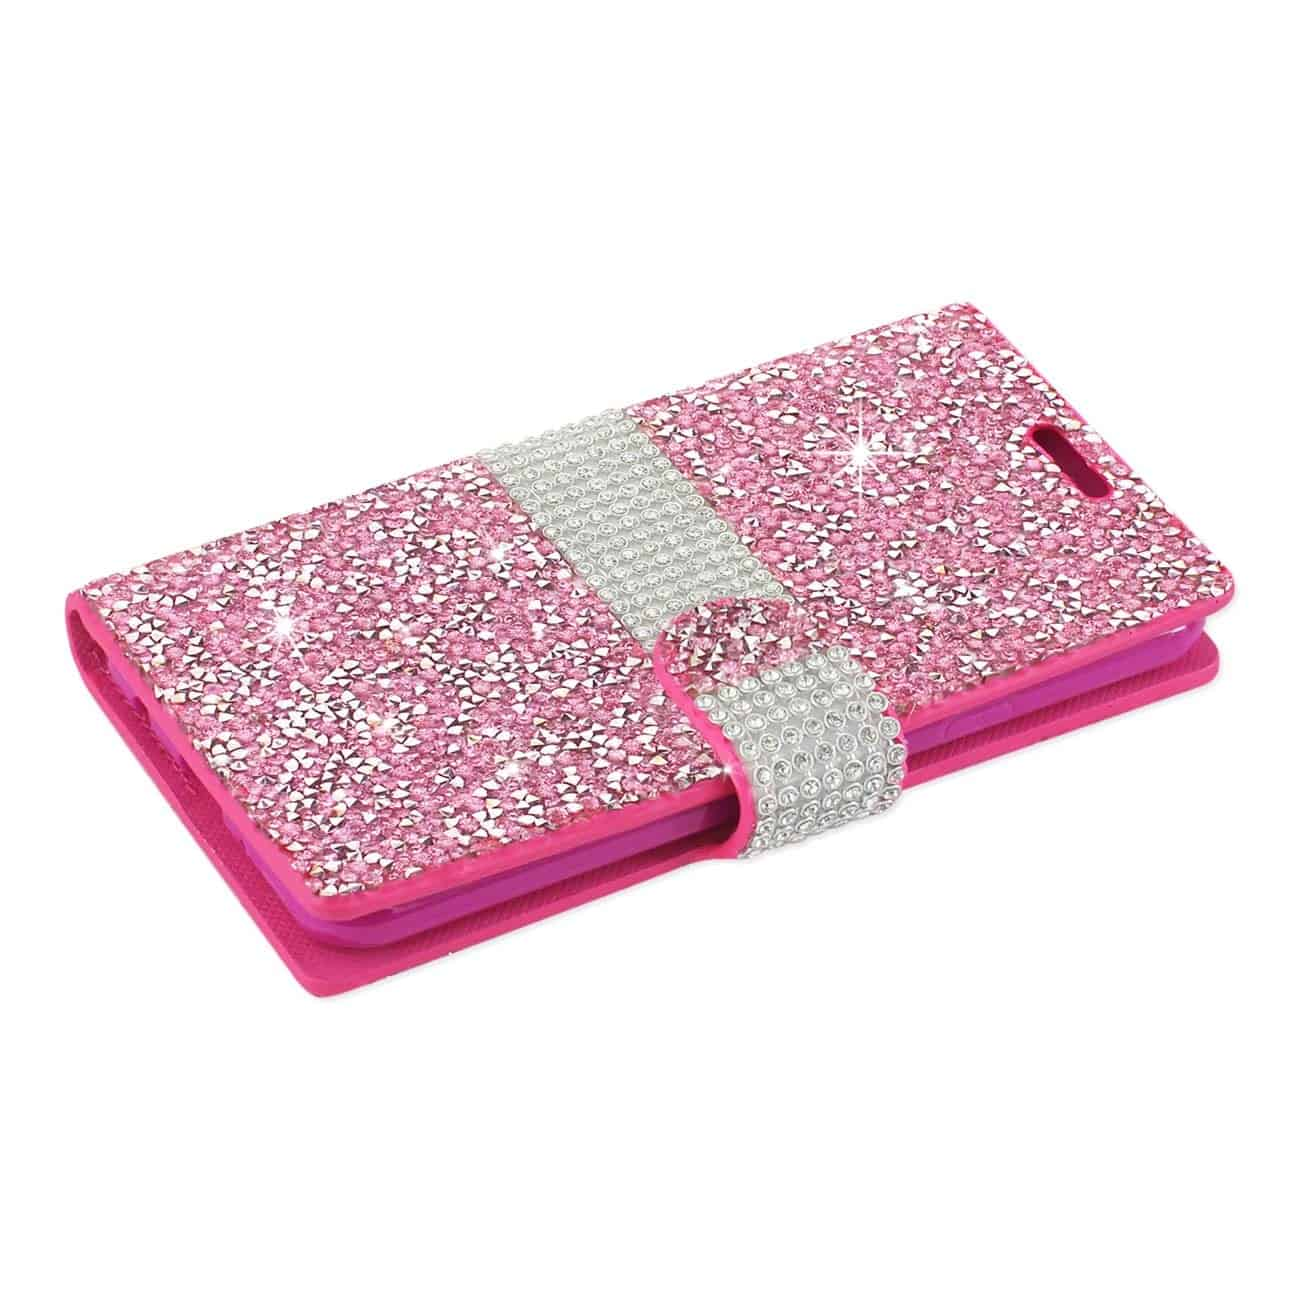 LG G6 DIAMOND RHINESTONE WALLET CASE IN PINK